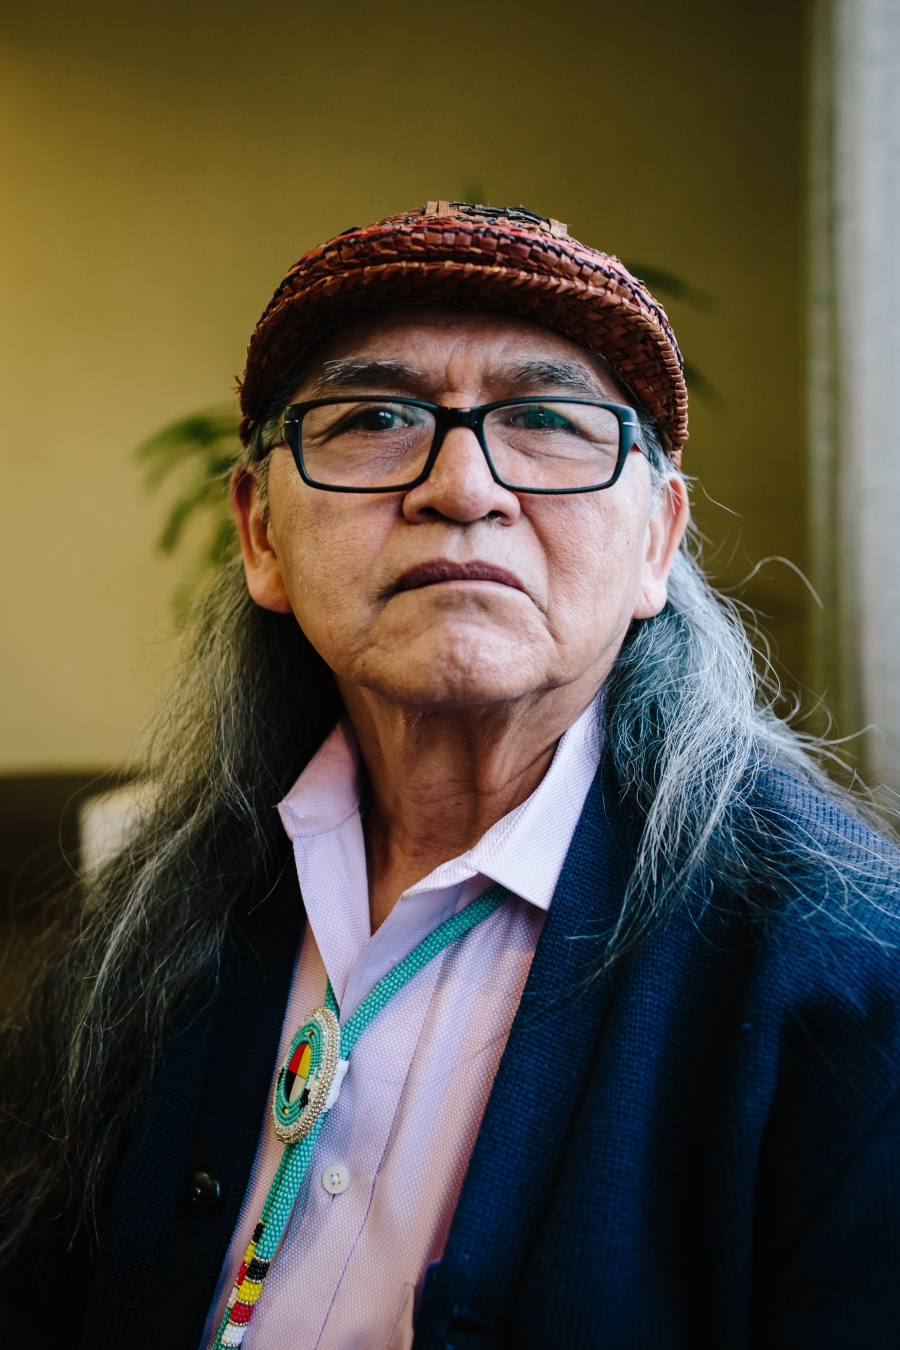 An older Indigenous man wearing hat looks towards the camera.